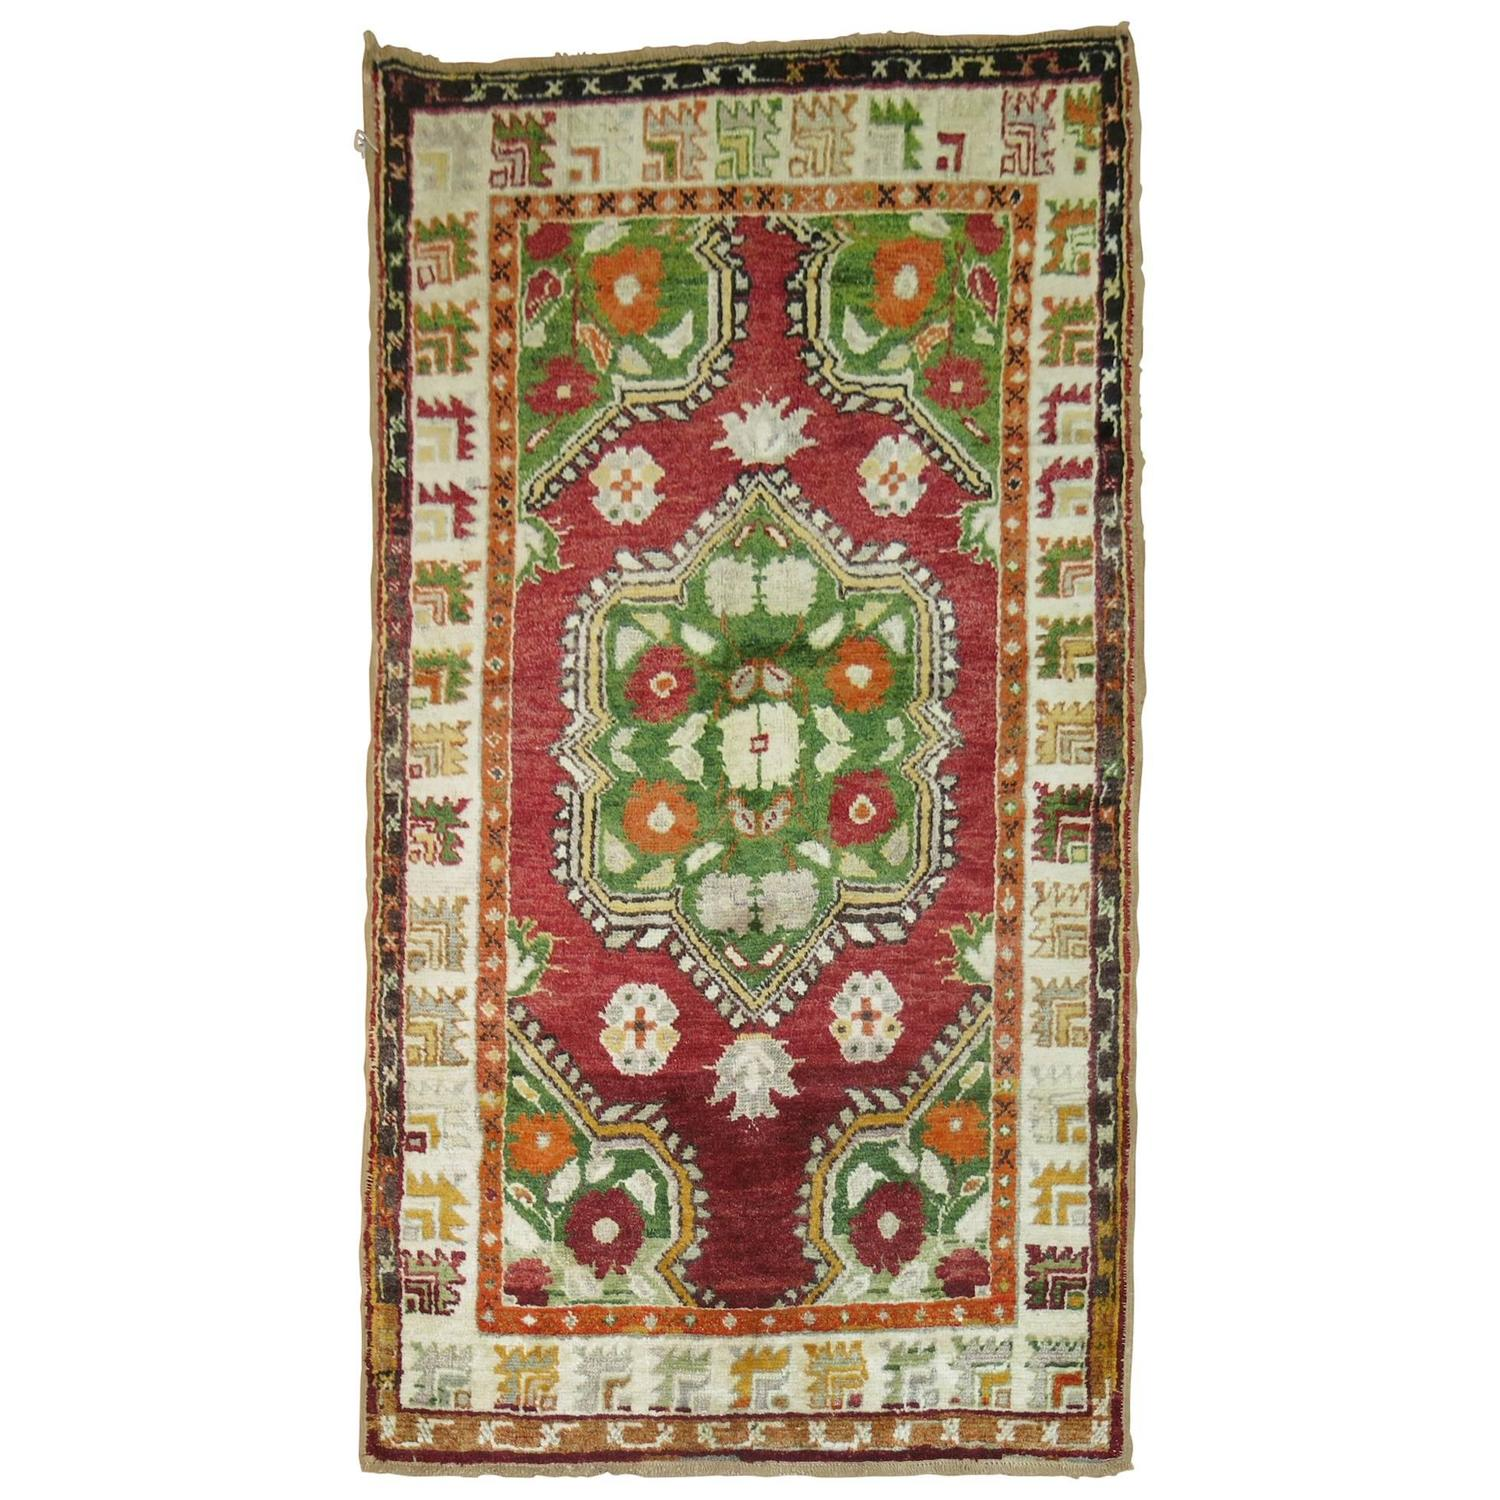 Vintage turkish oushak colorful throw scatter size rug for for Colorful rugs for sale